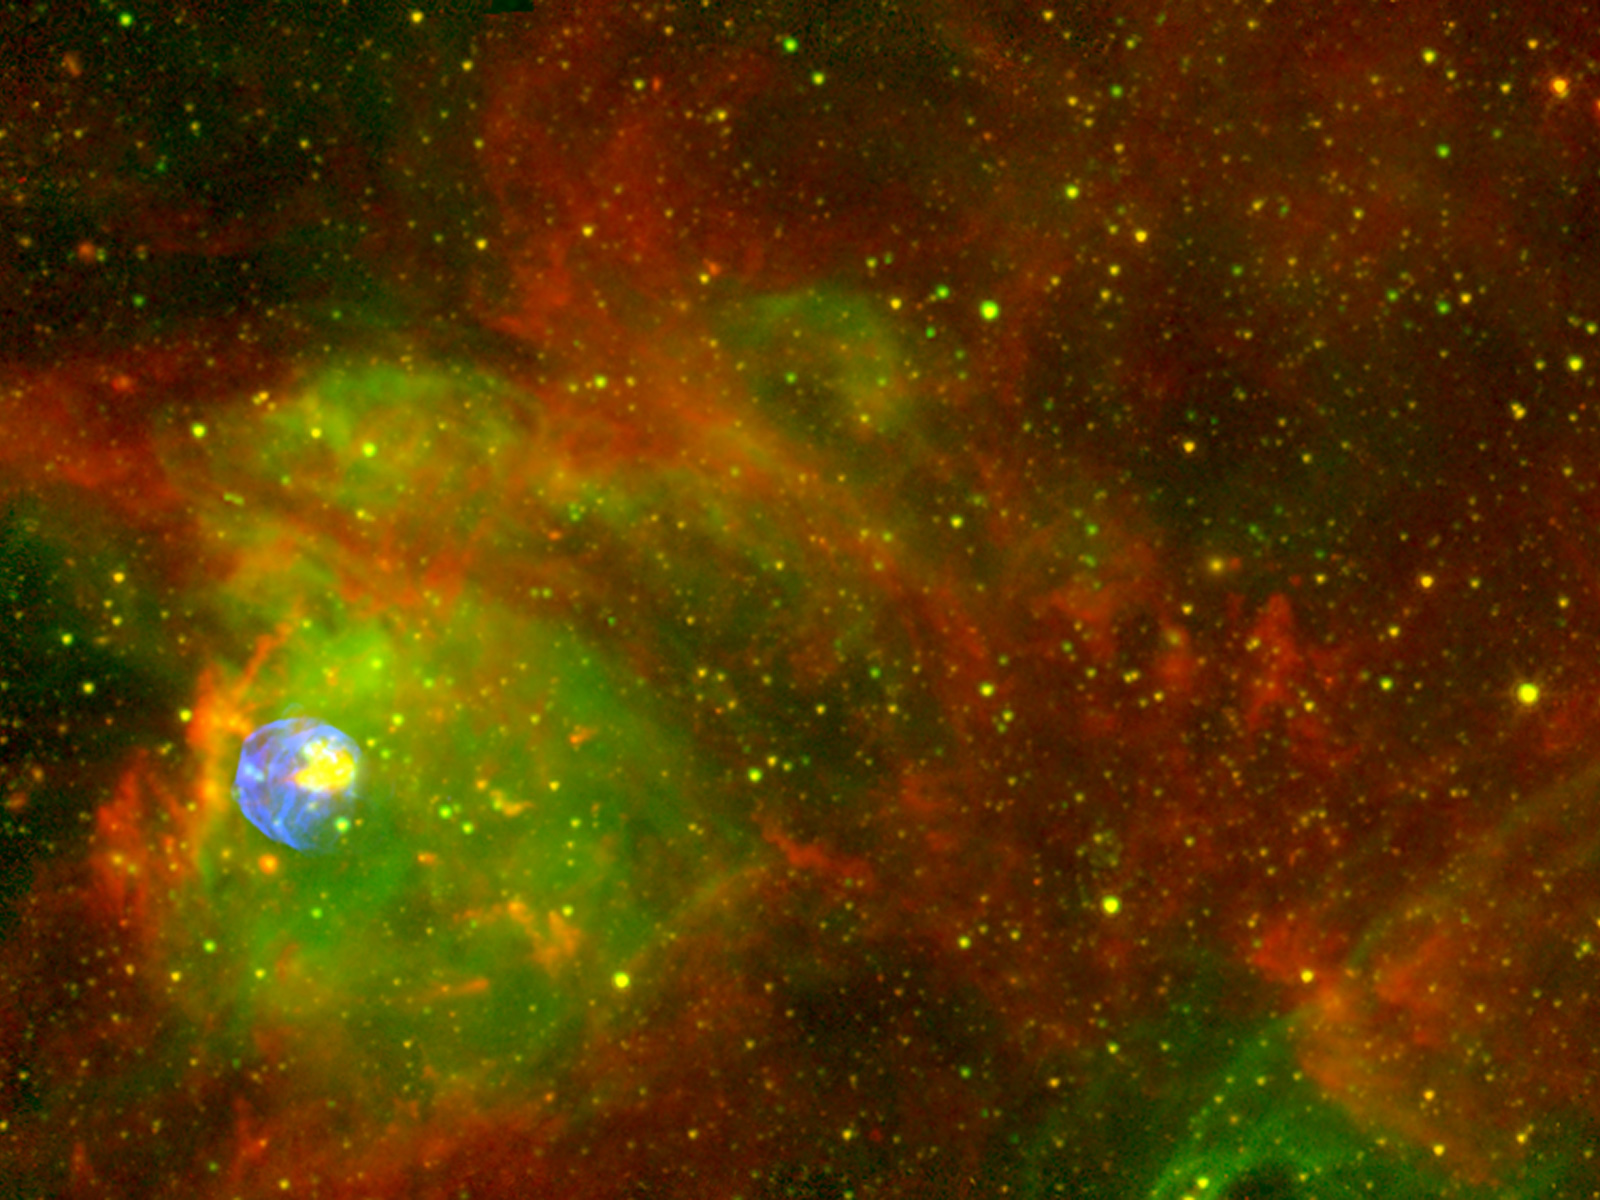 Spitzer chandra ctio image of n 63a wide field esa - Spitzer space telescope wallpaper ...